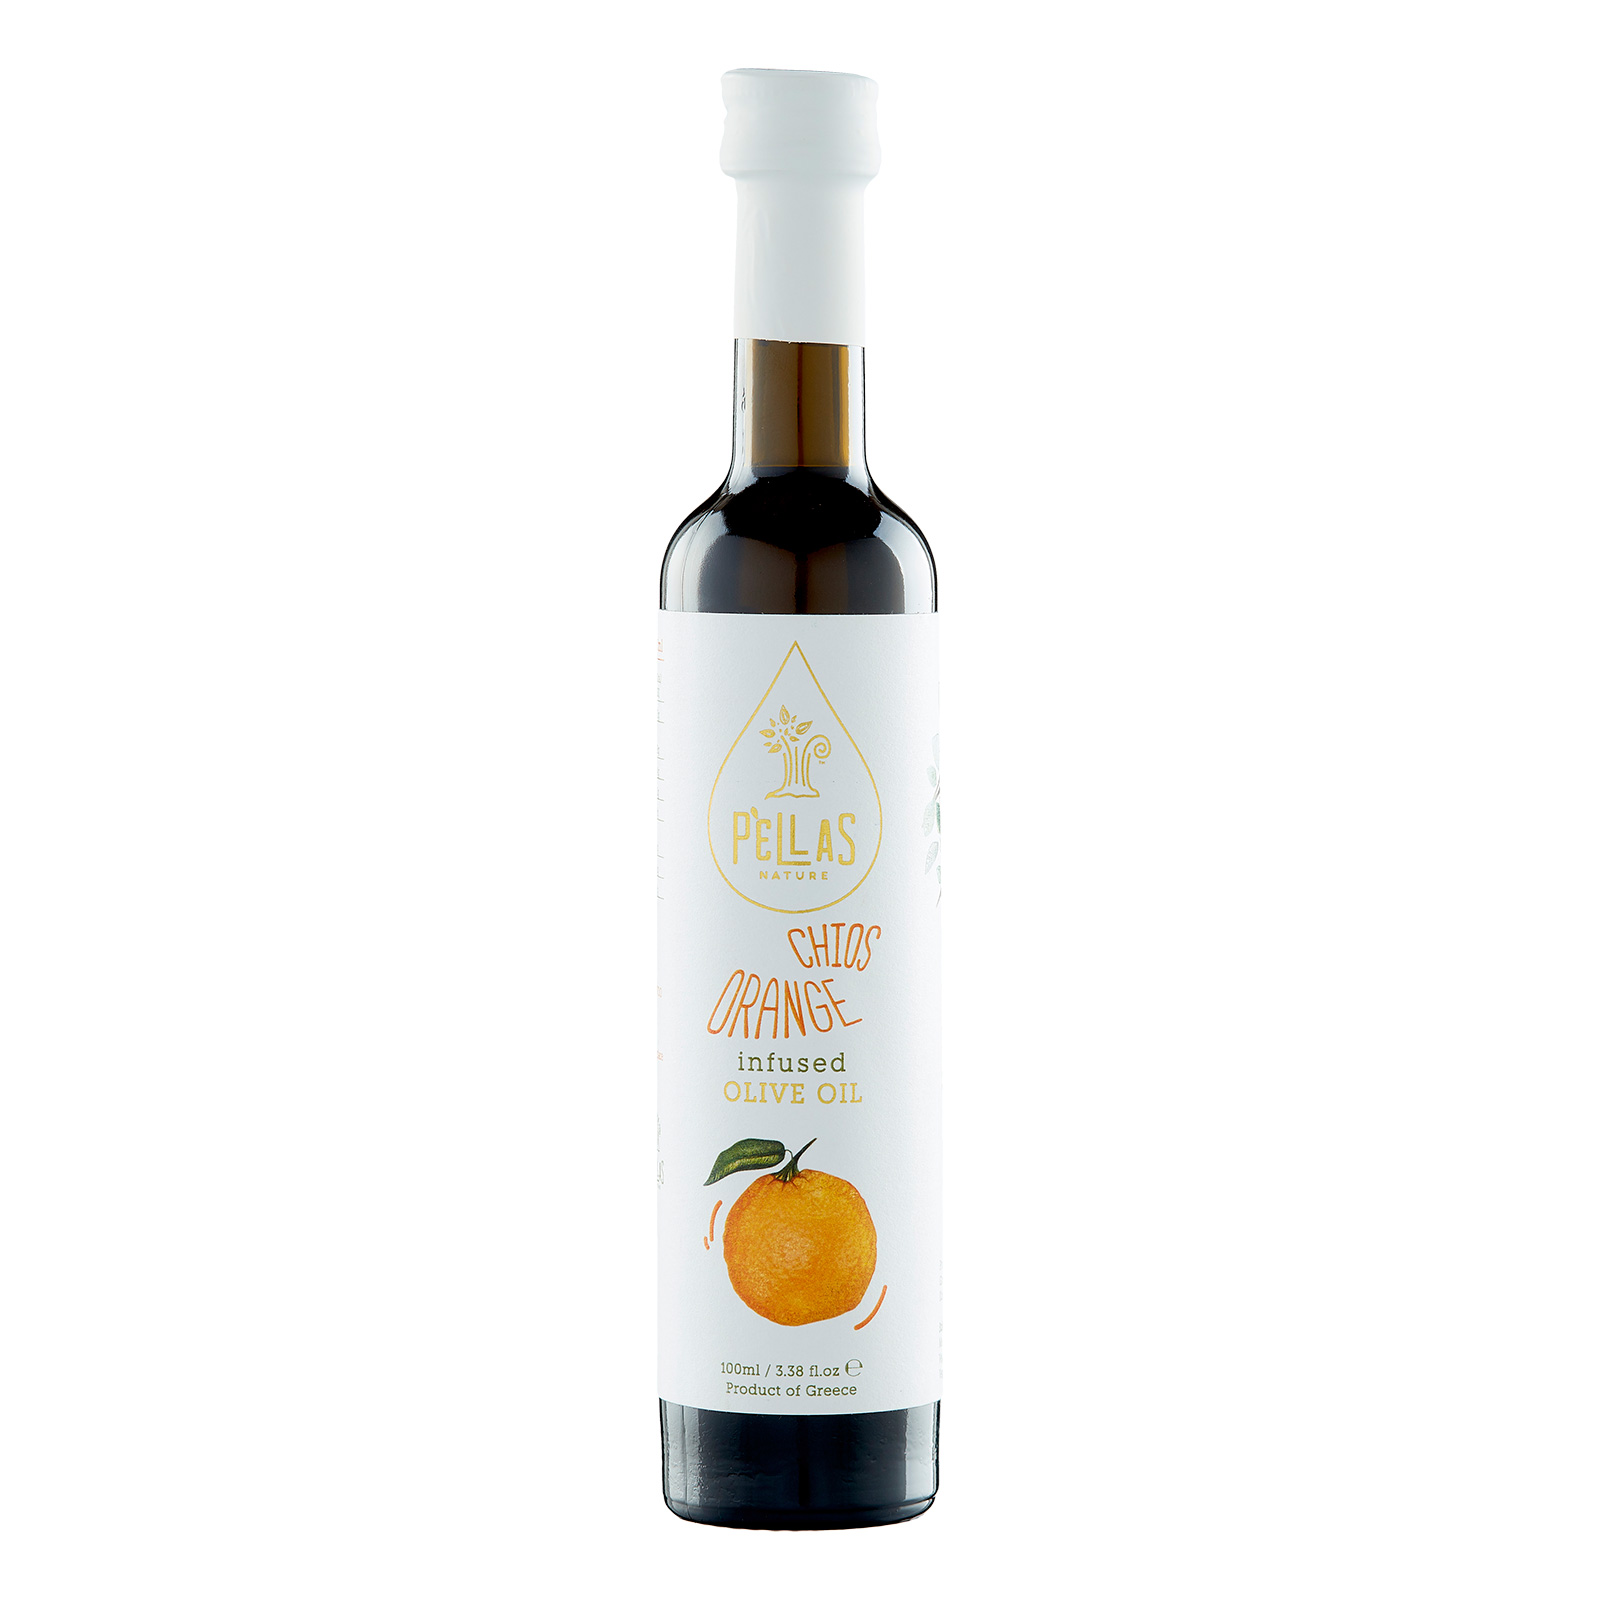 Pellas Nature Chios Orange infused Extra Virgin Olive Oil 3.38 fl.oz Bottle